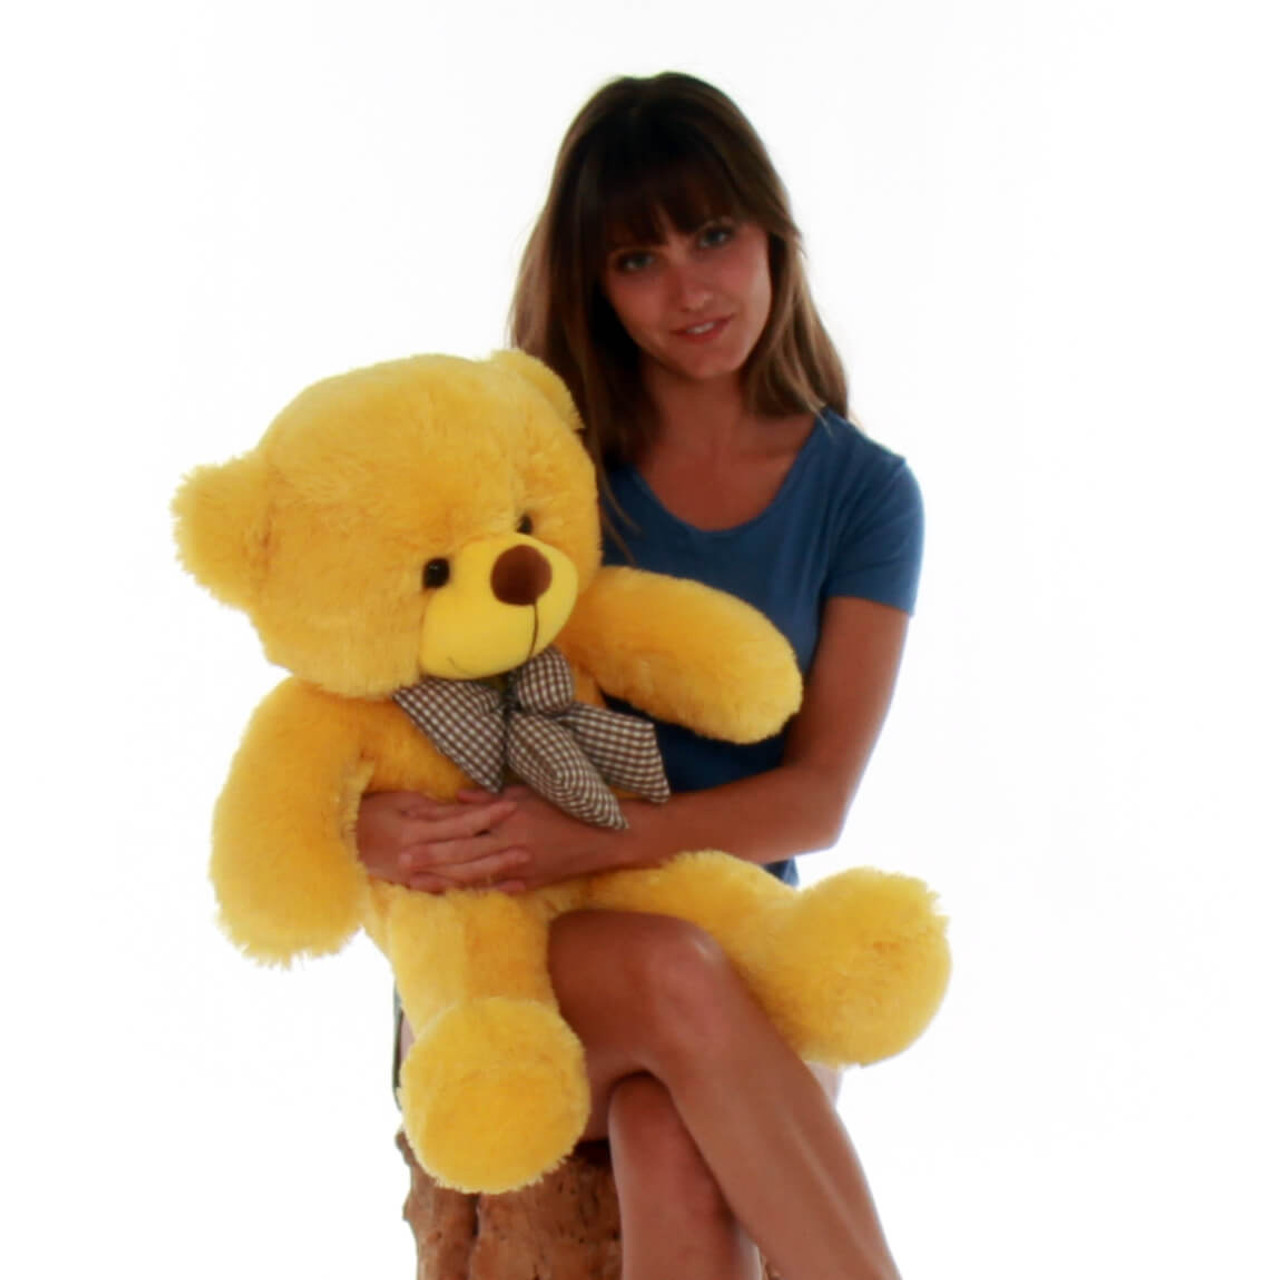 2.5ft super huggable Big Yellow daisy Teddy Bear Cuddly  perfect Giant Teddy cuddles